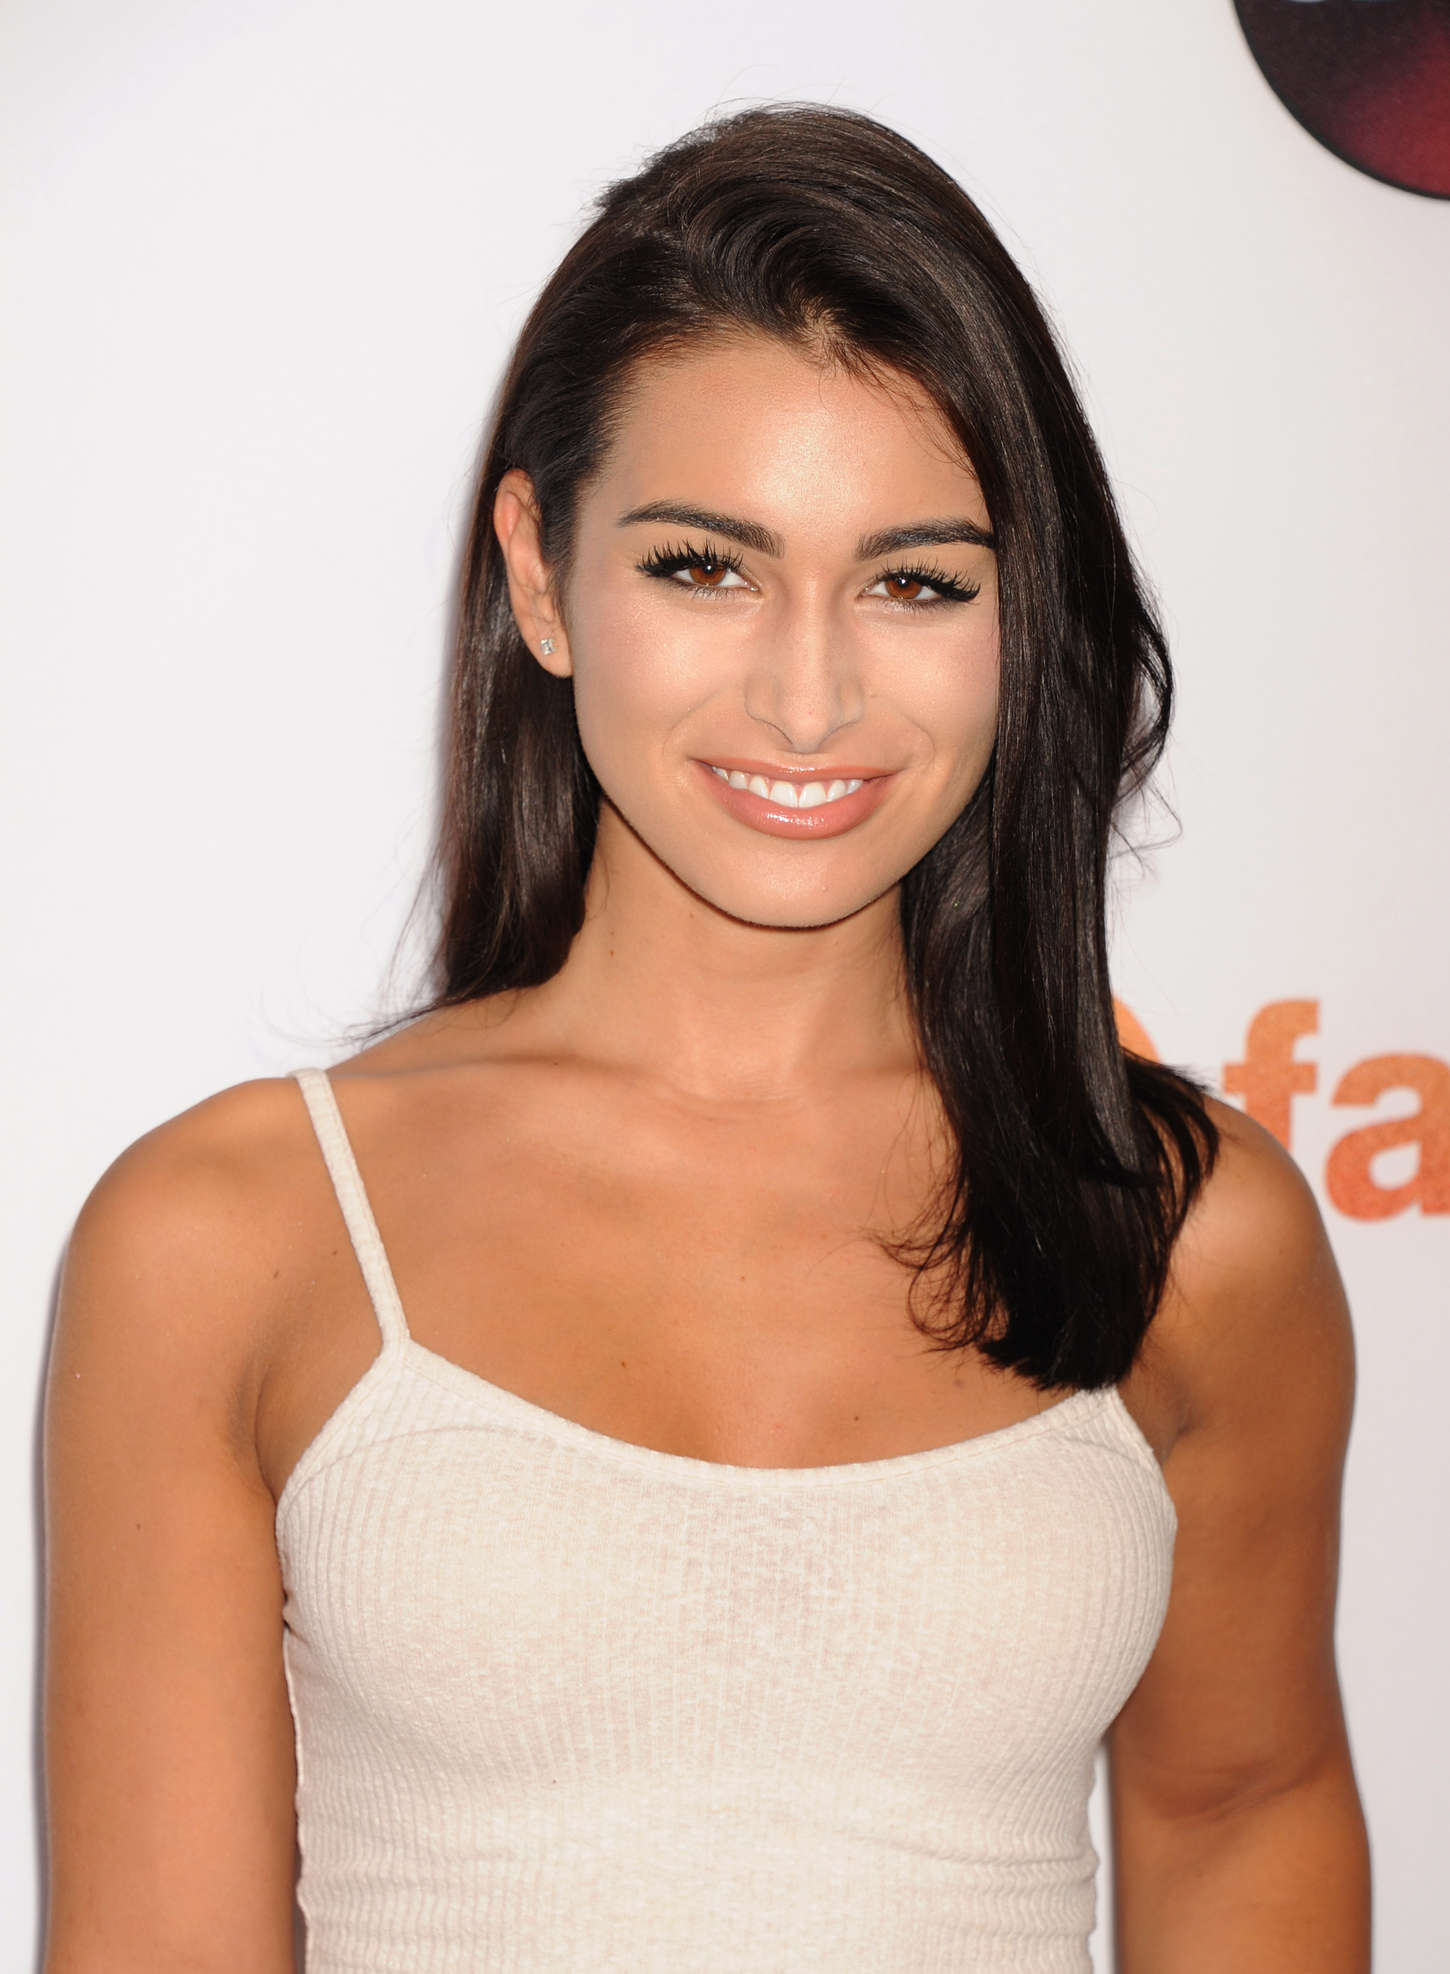 Ashley Iaconetti - Disney ABC 2015 Summer TCA Press Tour Photo Call in Beverly Hills